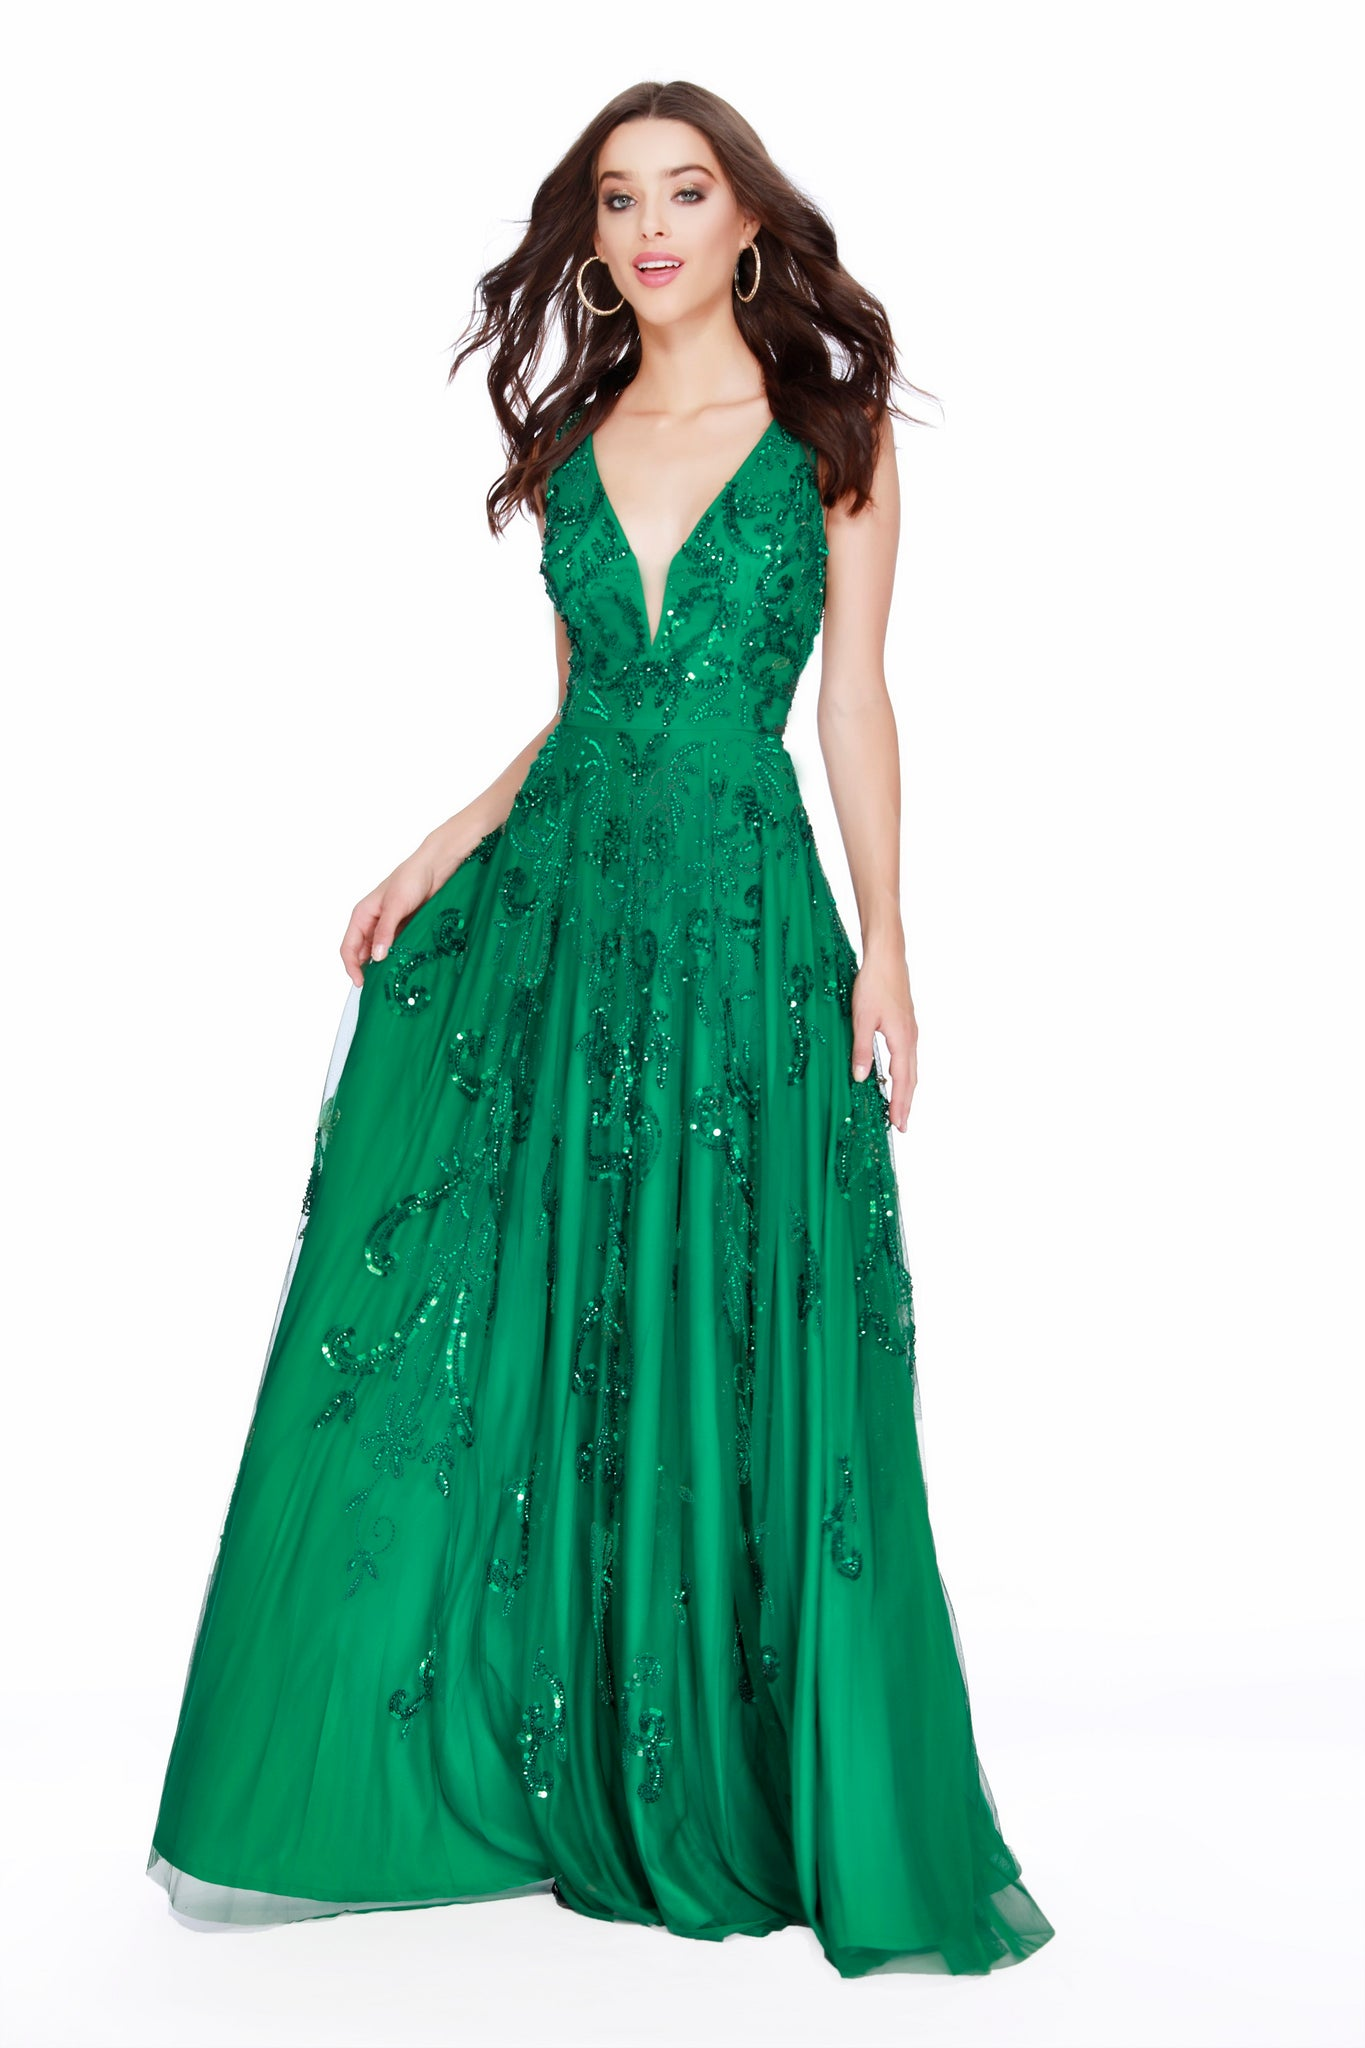 Low V- Neck Completely Embellished Fit to Flare Emerald Prom Dress 12227